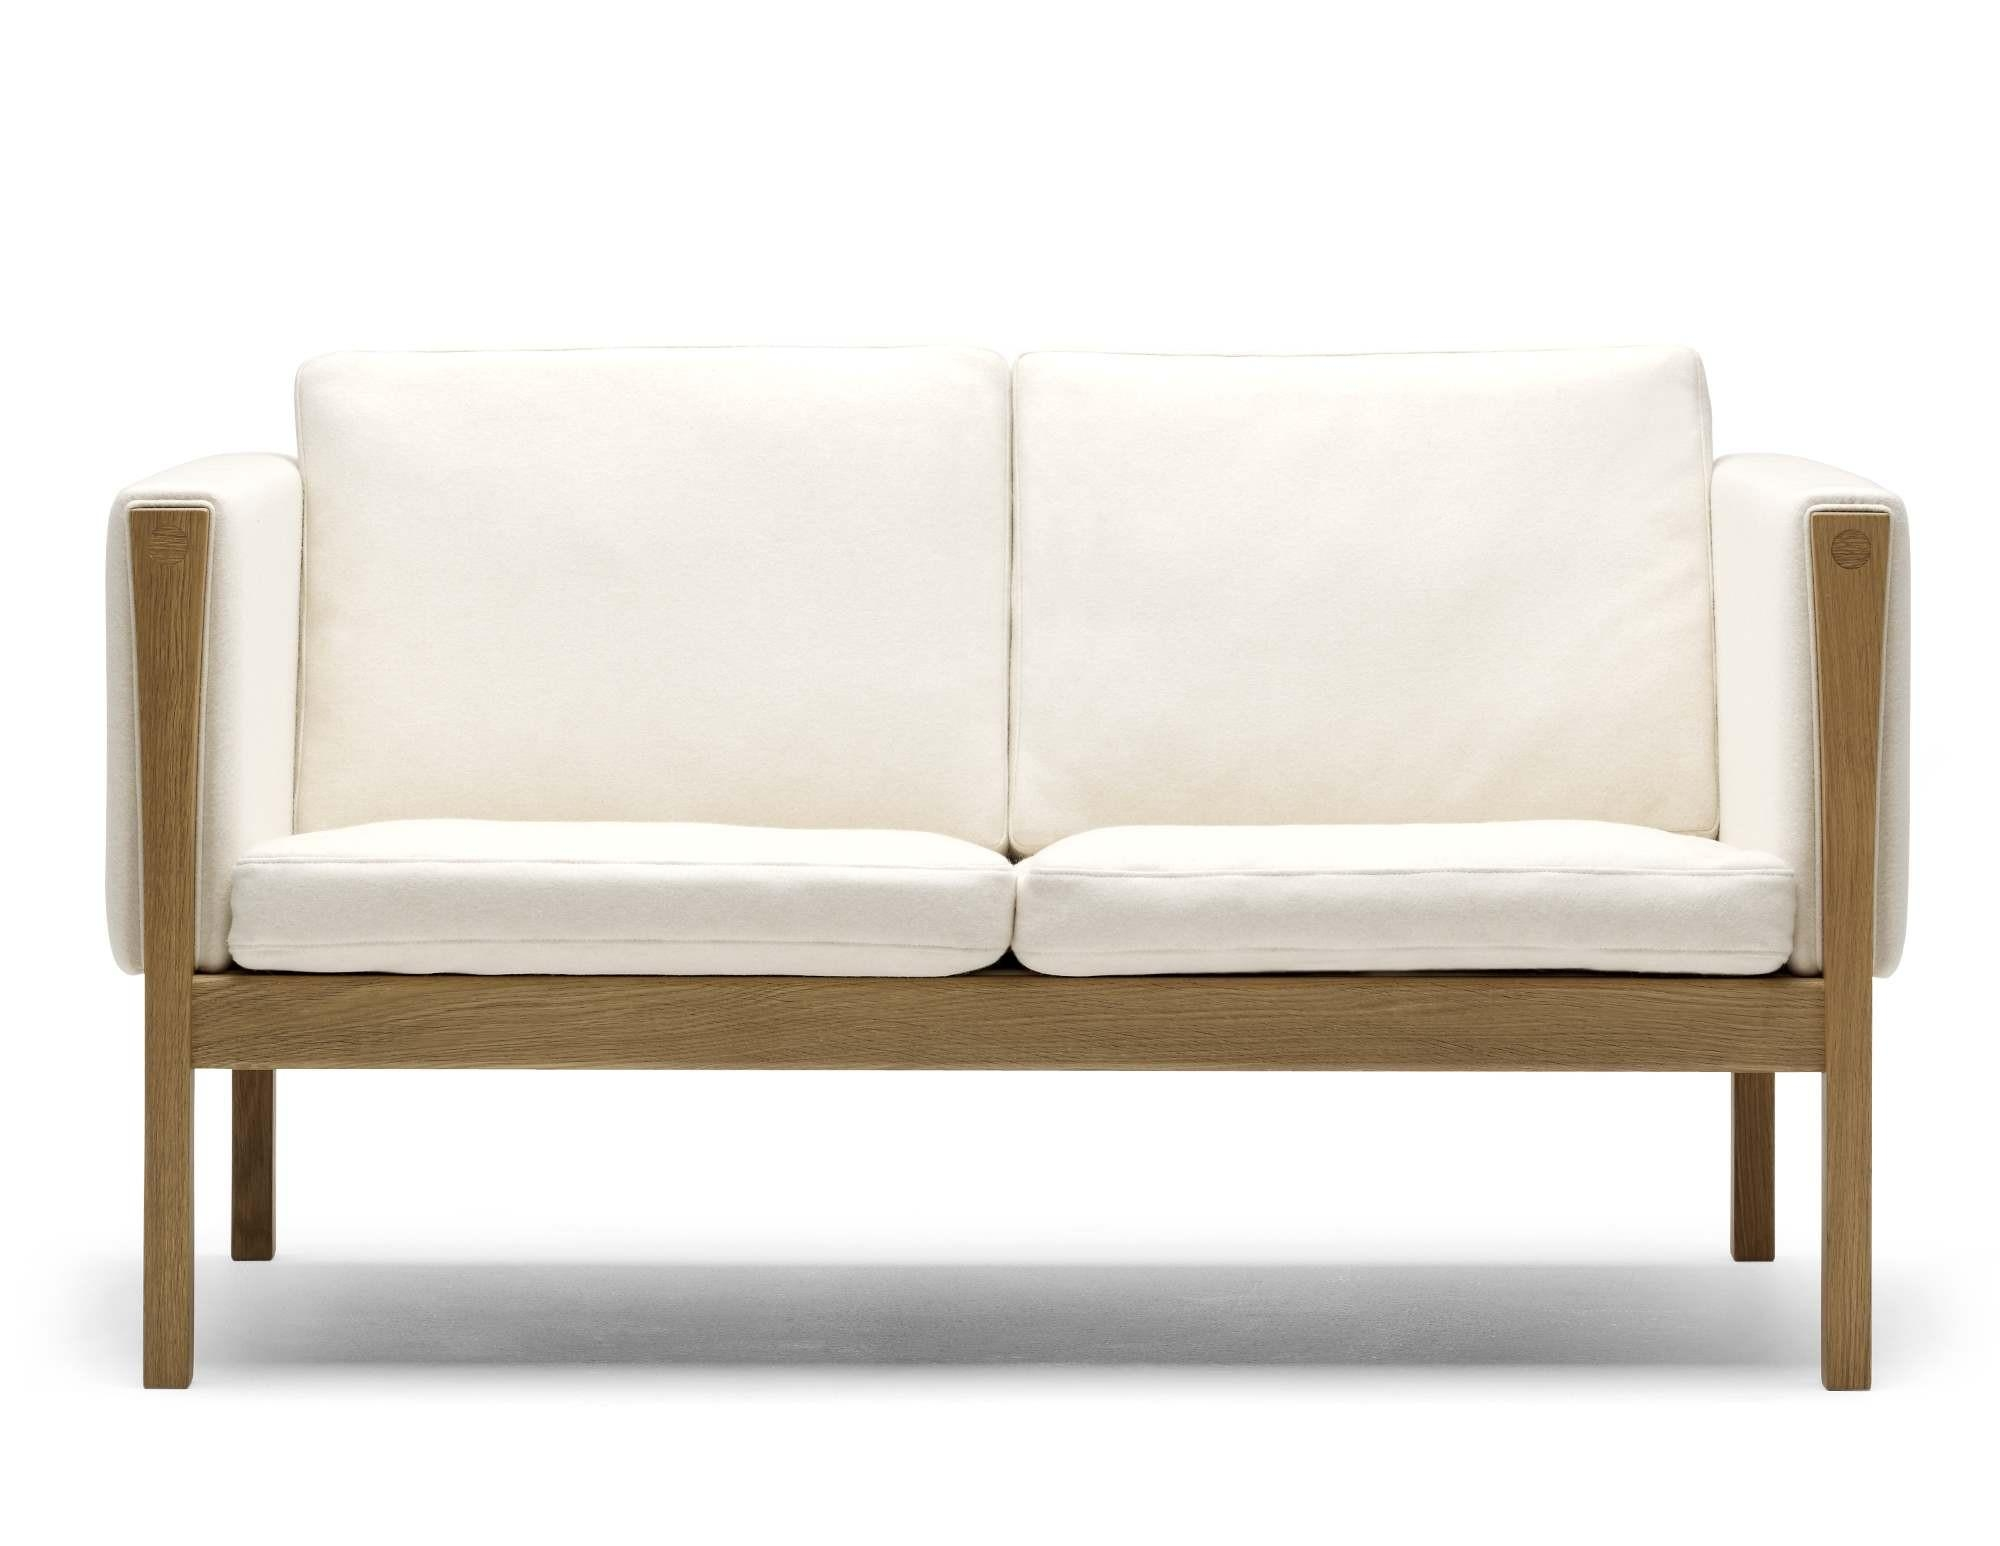 Sofas Center : 51 Stupendous Small 2 Seater Sofa Image Concept 2 With Regard To Small 2 Seater Sofas (Image 12 of 20)